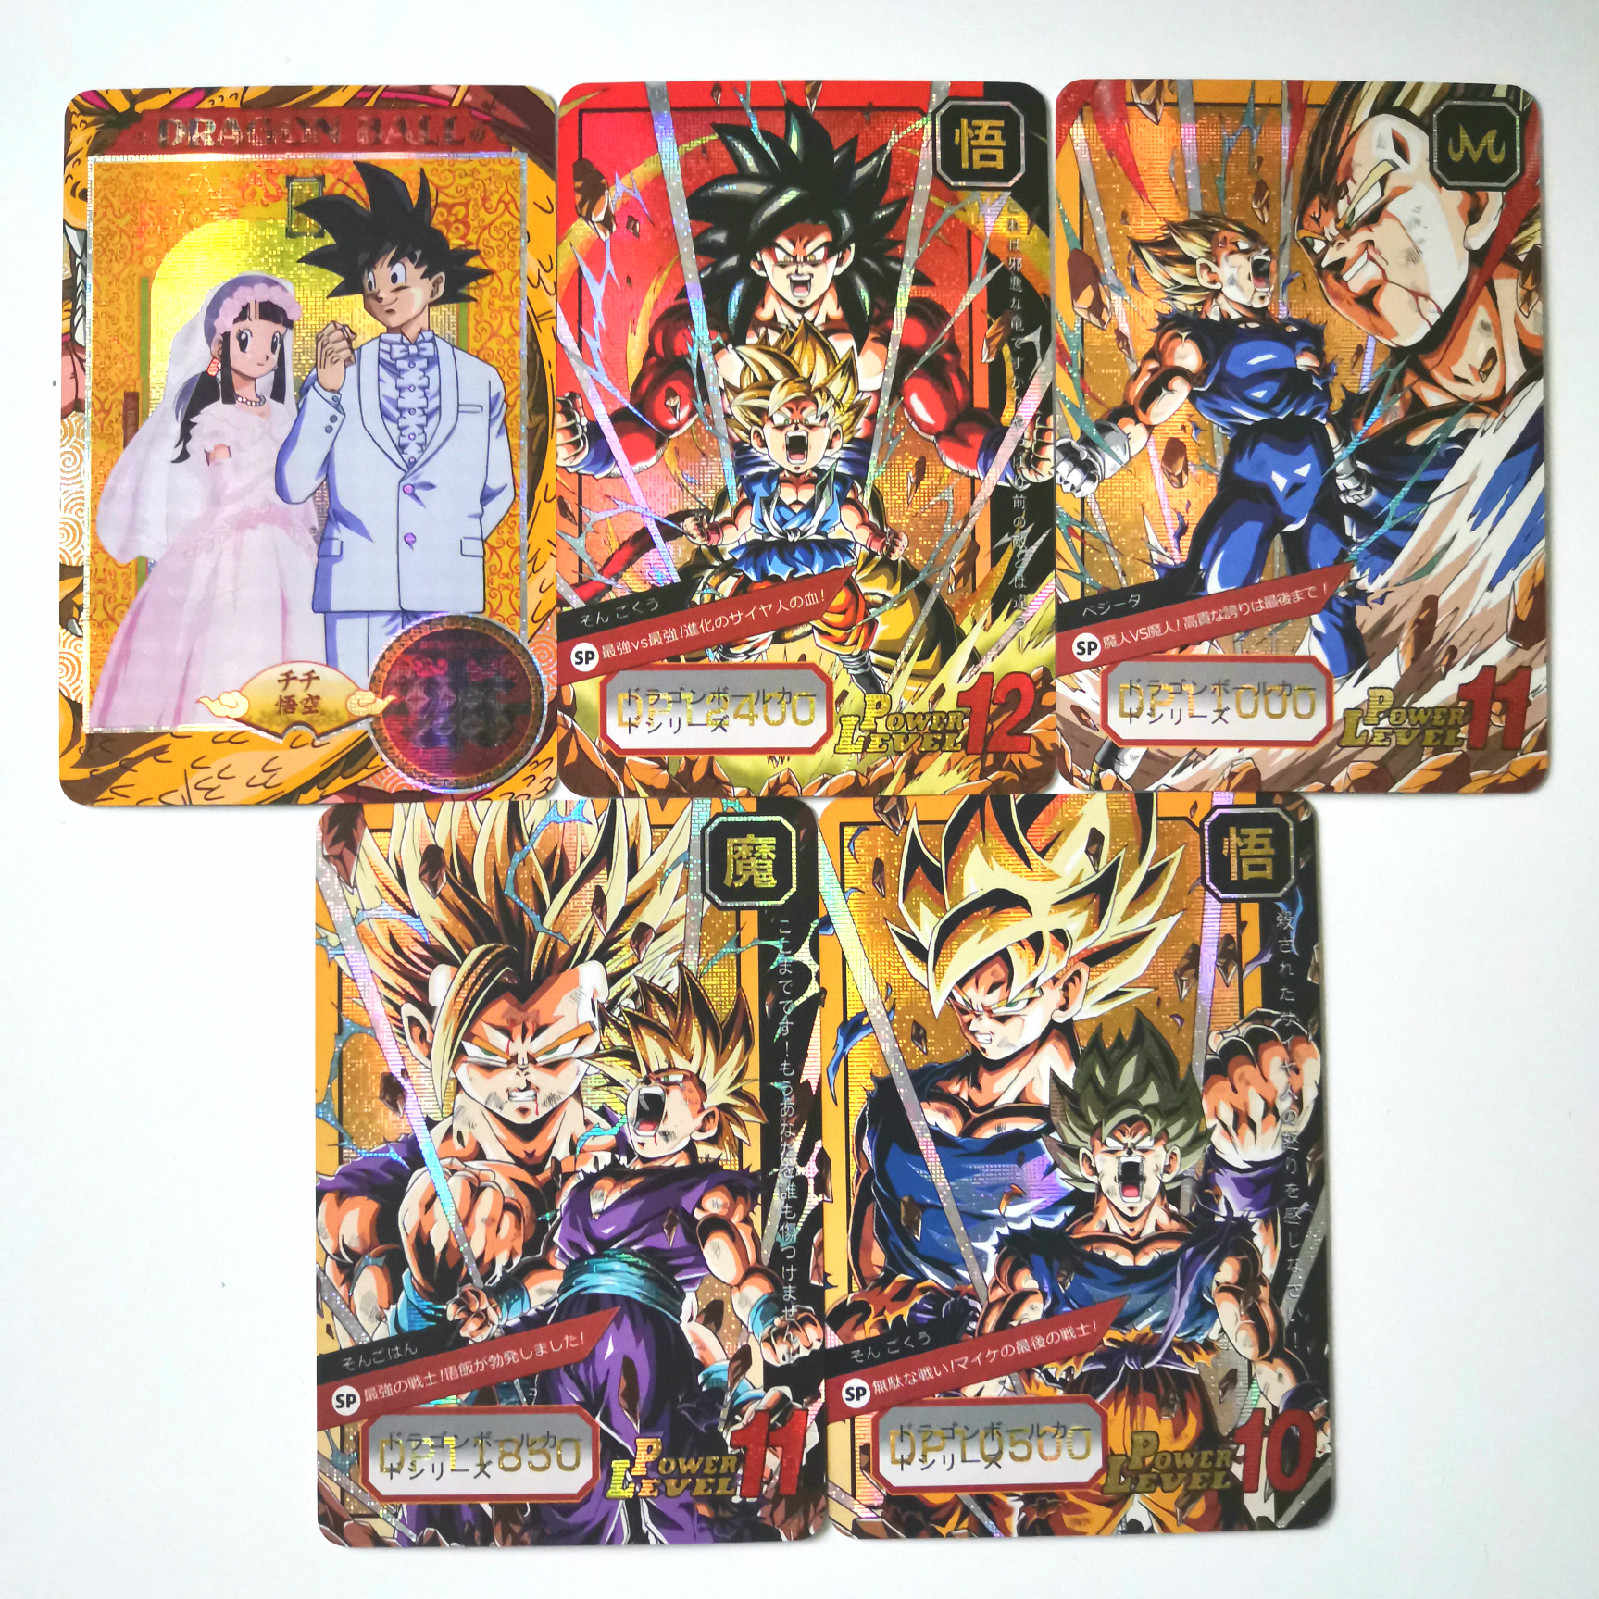 50pcs Super Dragon Ball Heroes Battle Card Goku Bulma Master Roshi Dragon Ball Super Game Collection Anime Cards